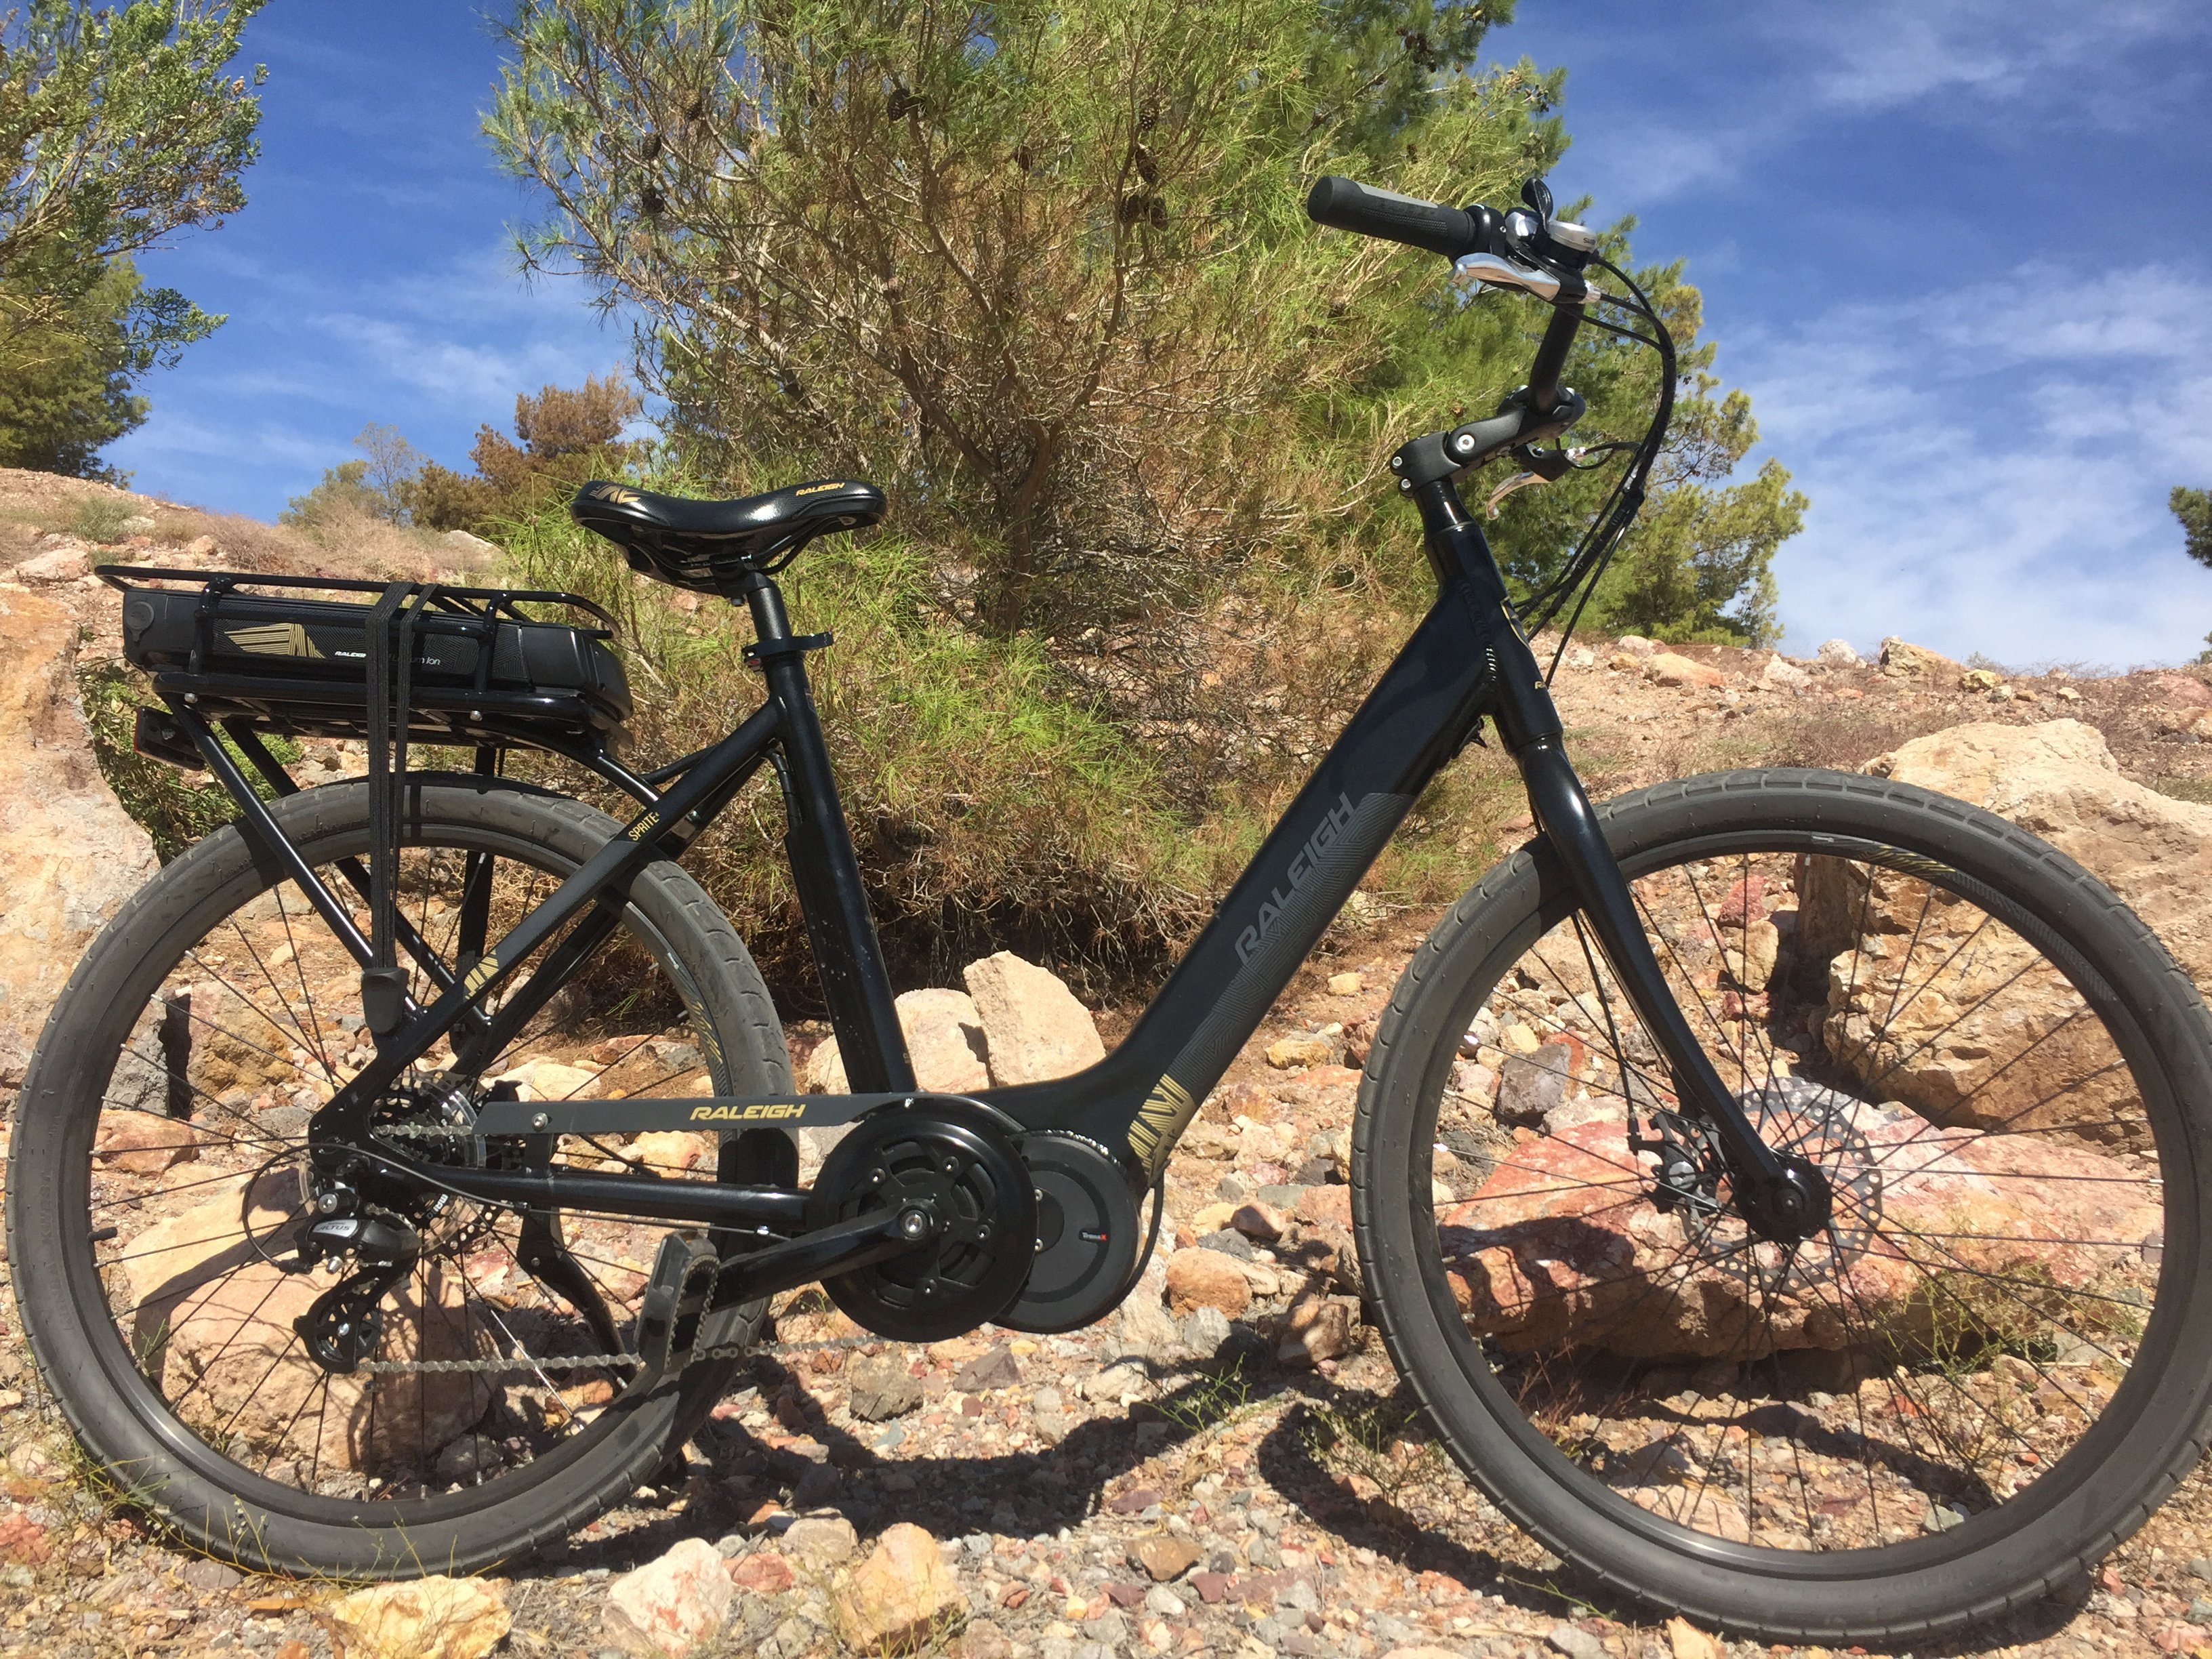 The 2018 Raleigh Sprite Ie E-bike Is Fun And Affordable photo